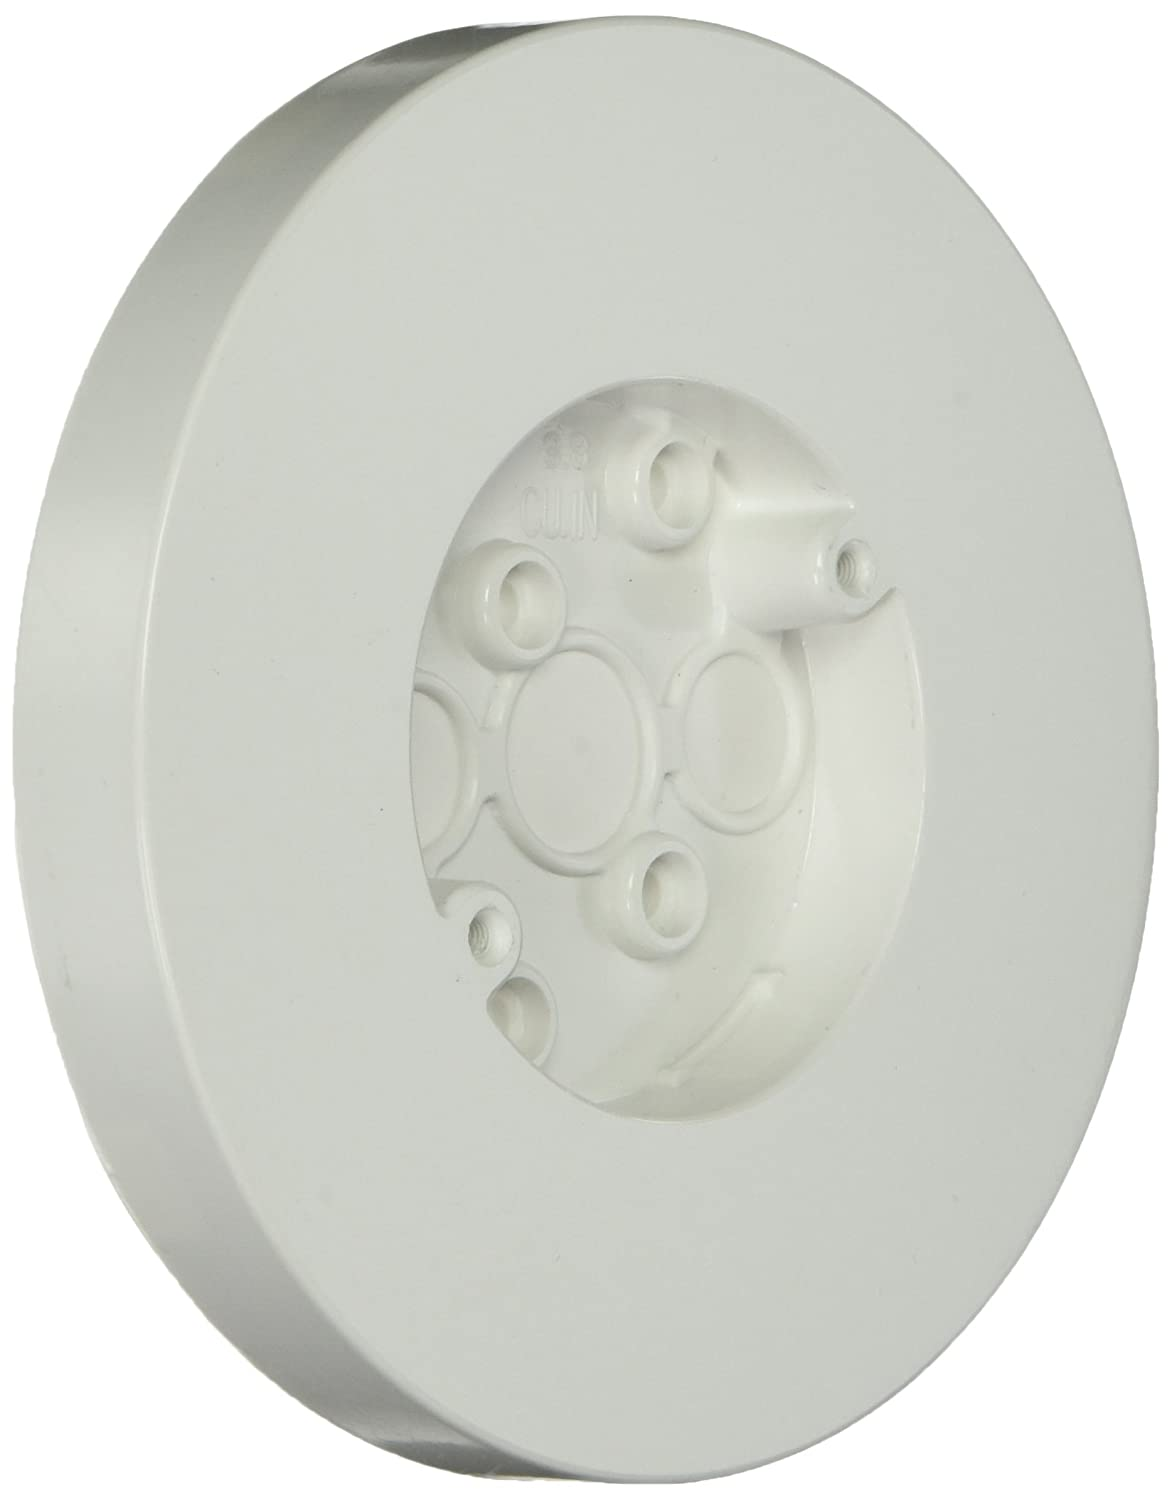 Thomas Betts 5080 WHITE 5080 WH 3.8 cu. in. Round 2 Gang Surface Mount Box White